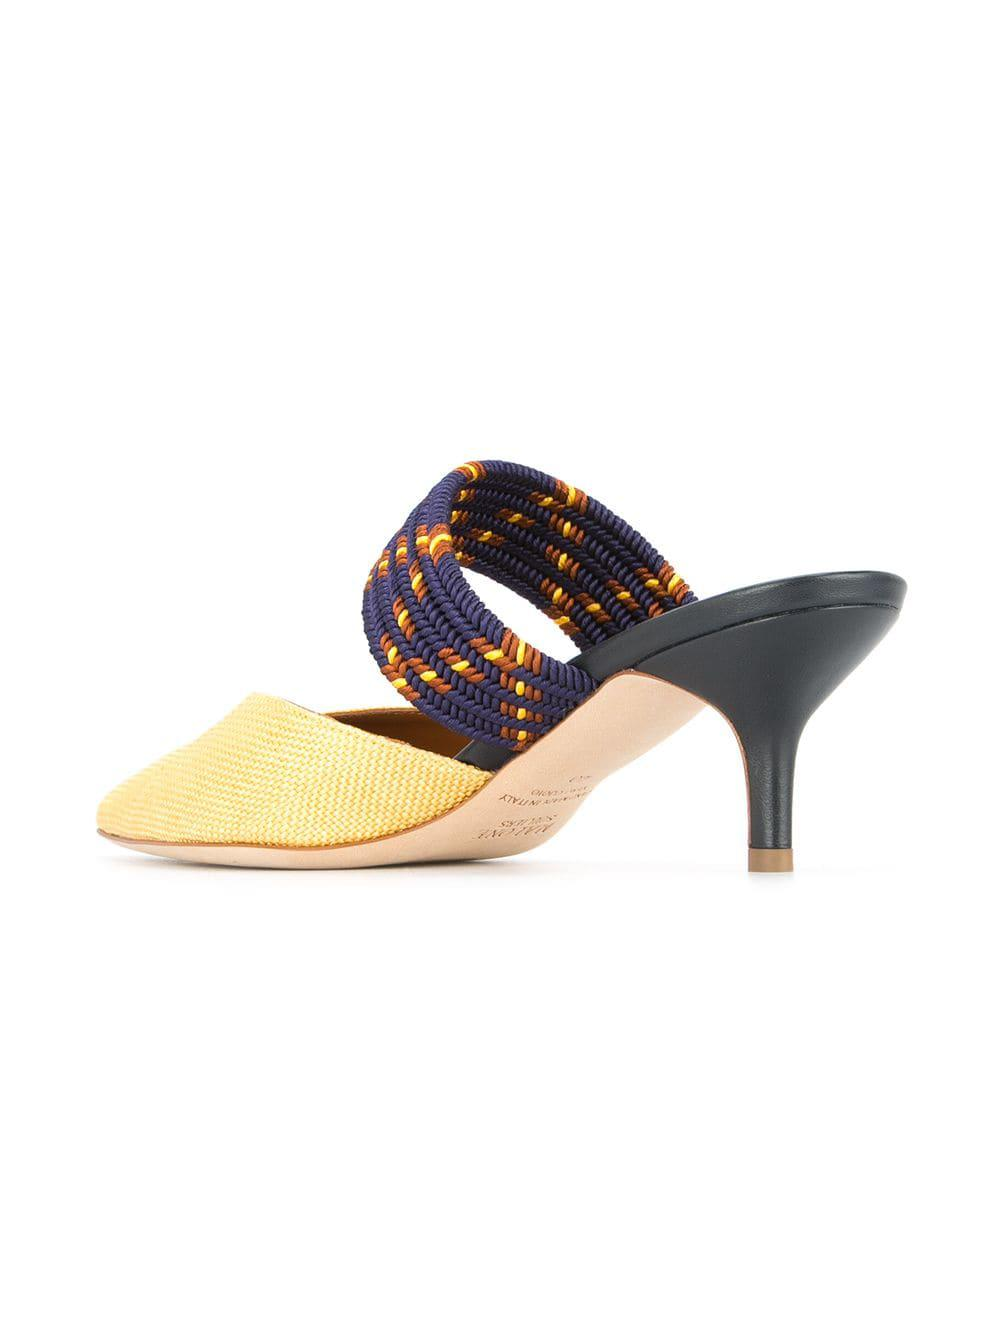 00cf1c0c512 Malone Souliers Maisie Mules in Yellow - Lyst